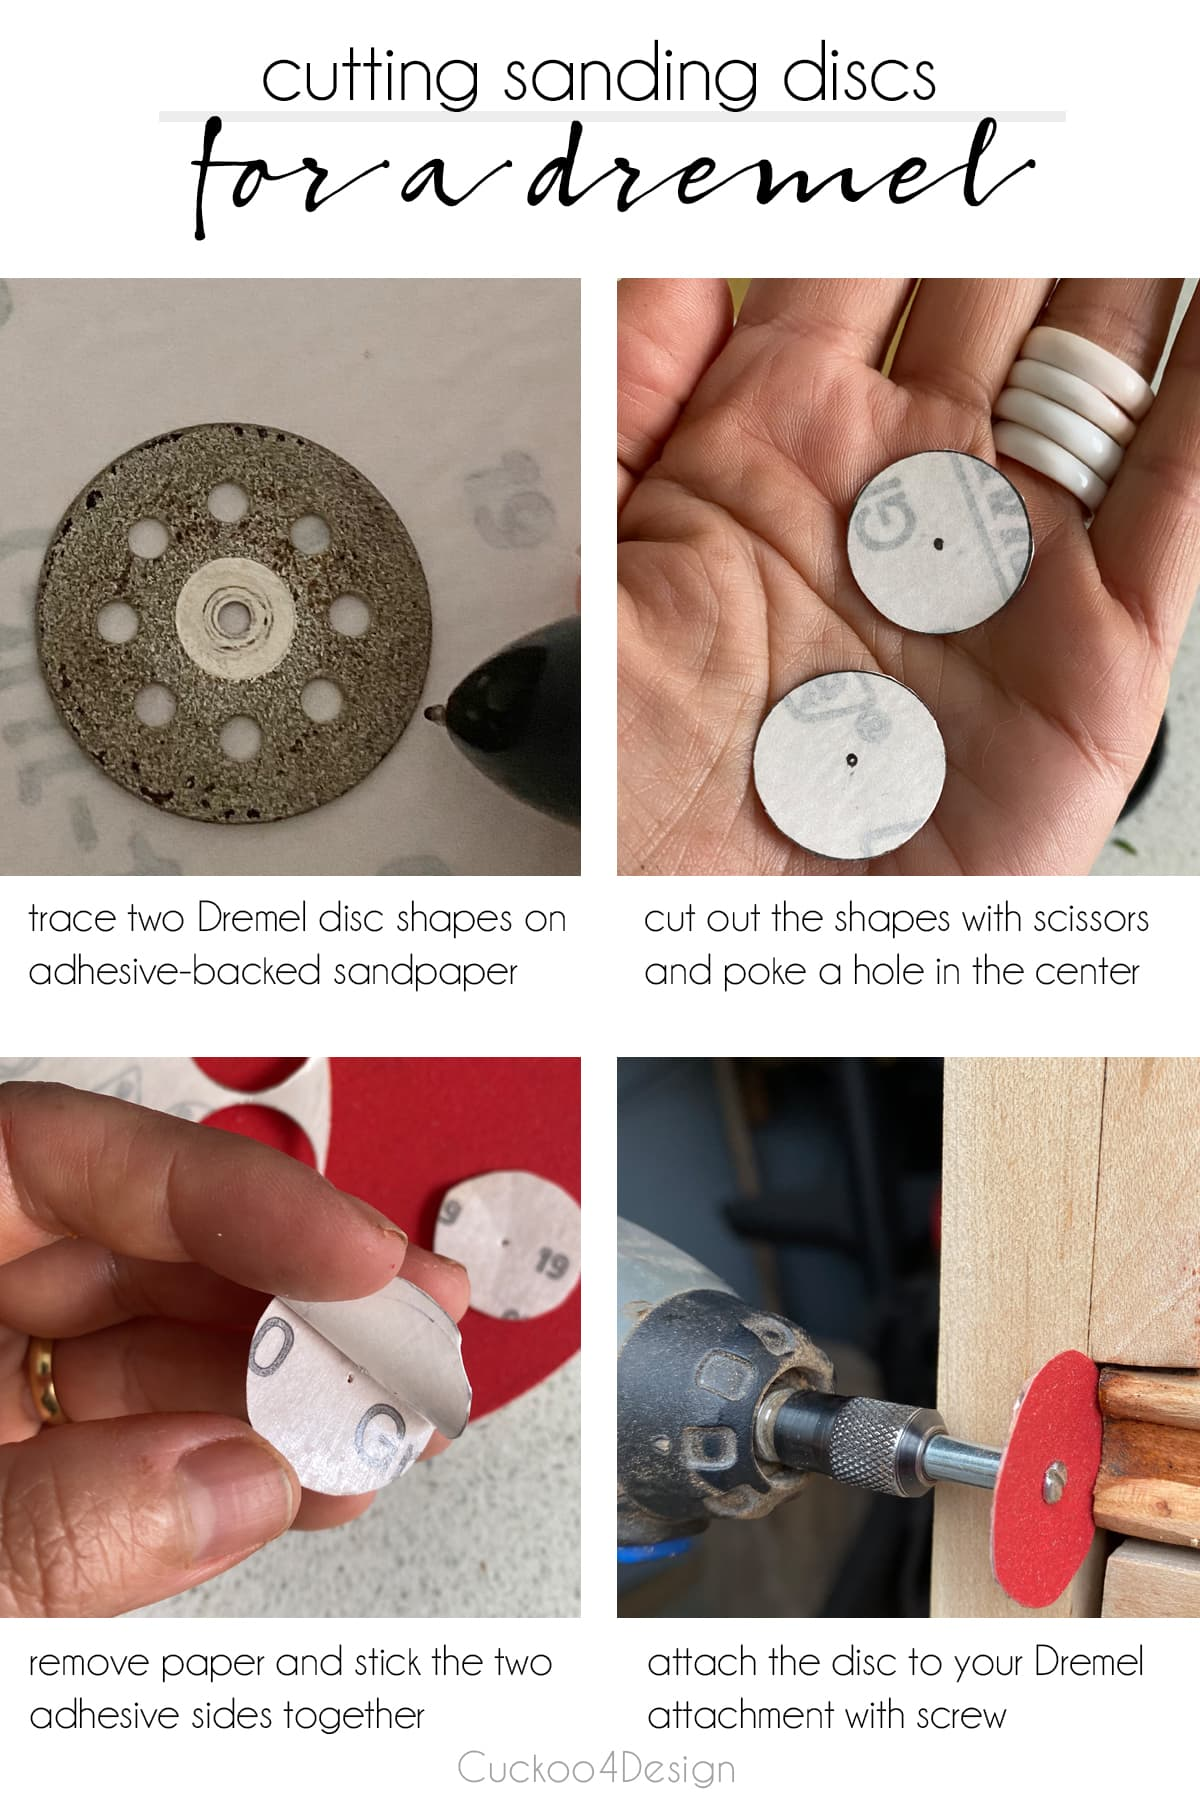 How to cutting Dremel sanding discs for easy detail sanding